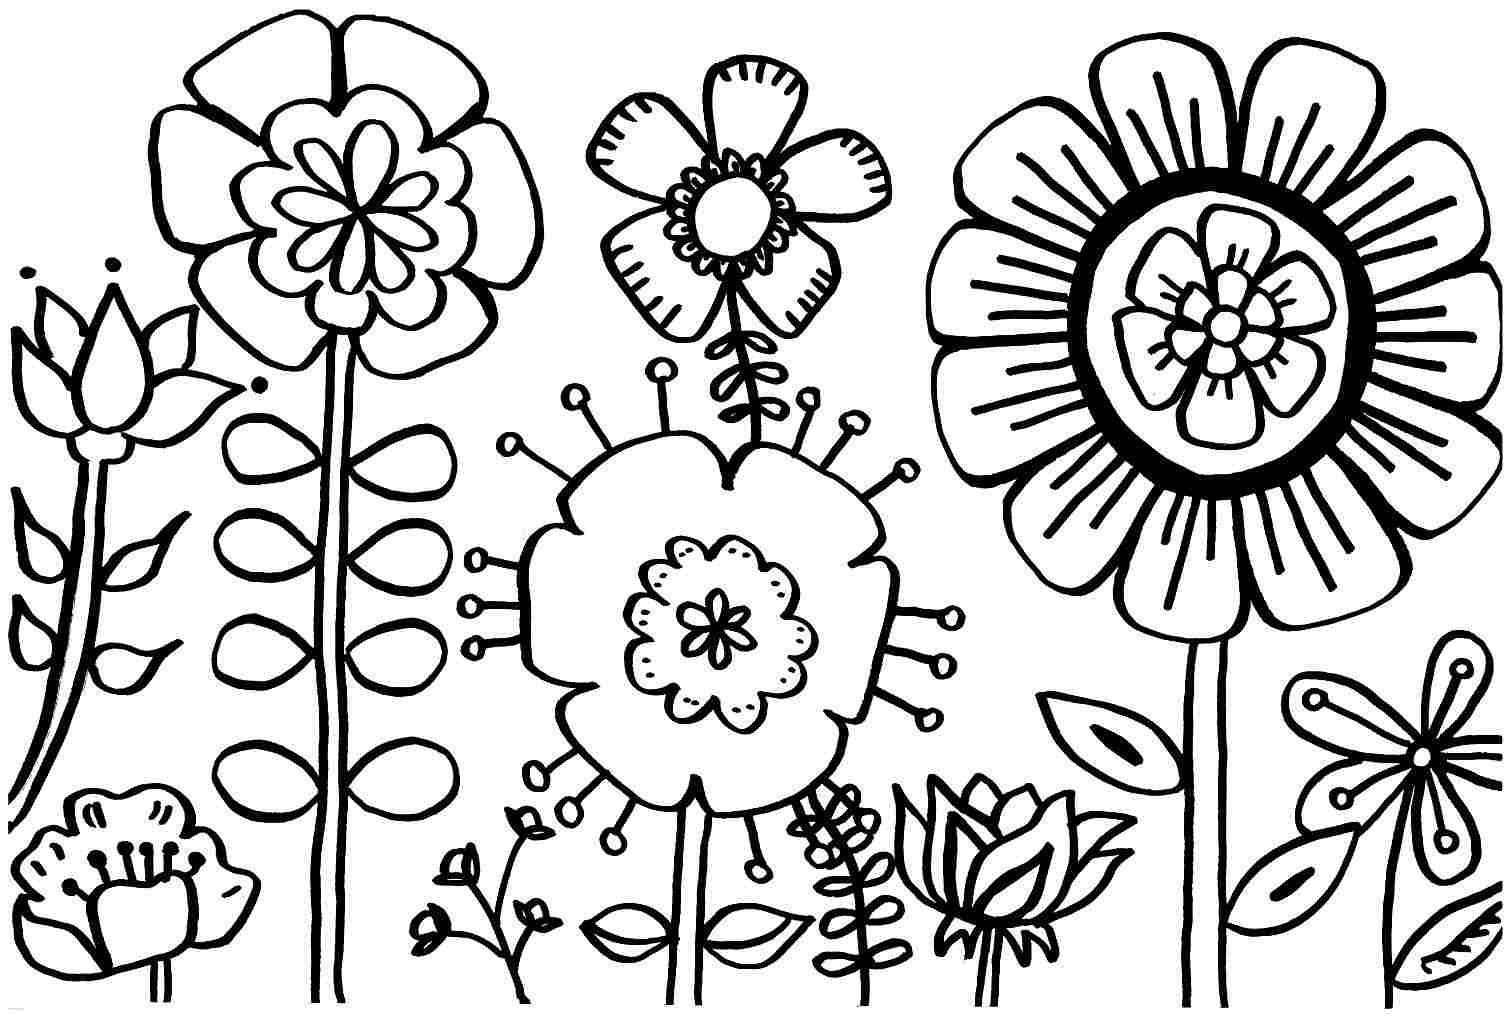 Free Printable Spring Coloring Pages Luxury Coloring Pages Spring Coloring Pages P In 2020 Spring Coloring Sheets Spring Coloring Pages Printable Flower Coloring Pages